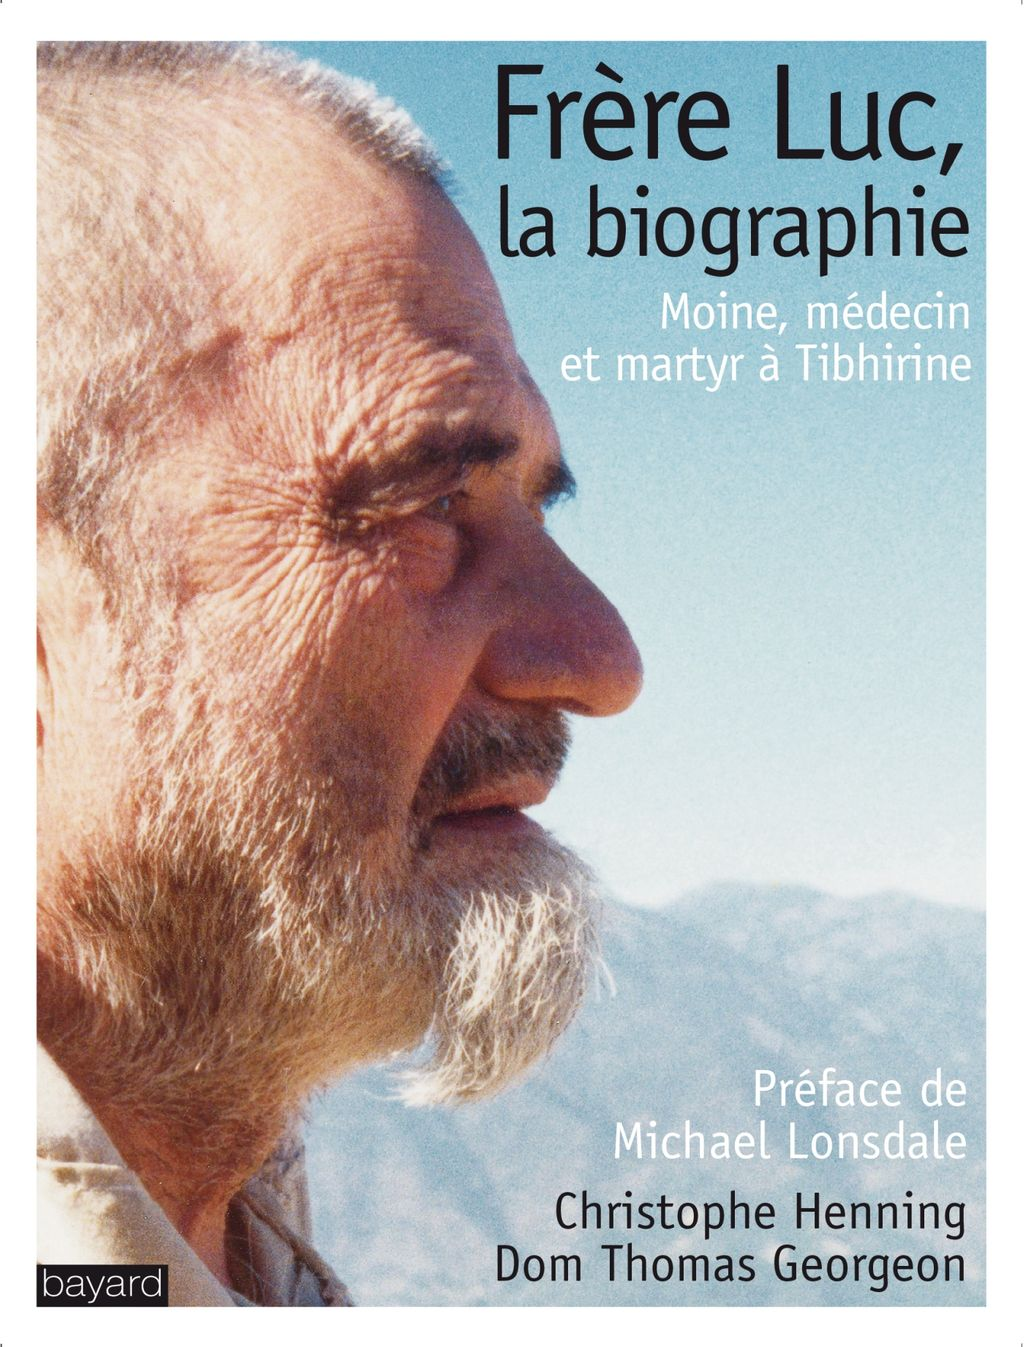 « FRERE LUC, LA BIOGRAPHIE » cover